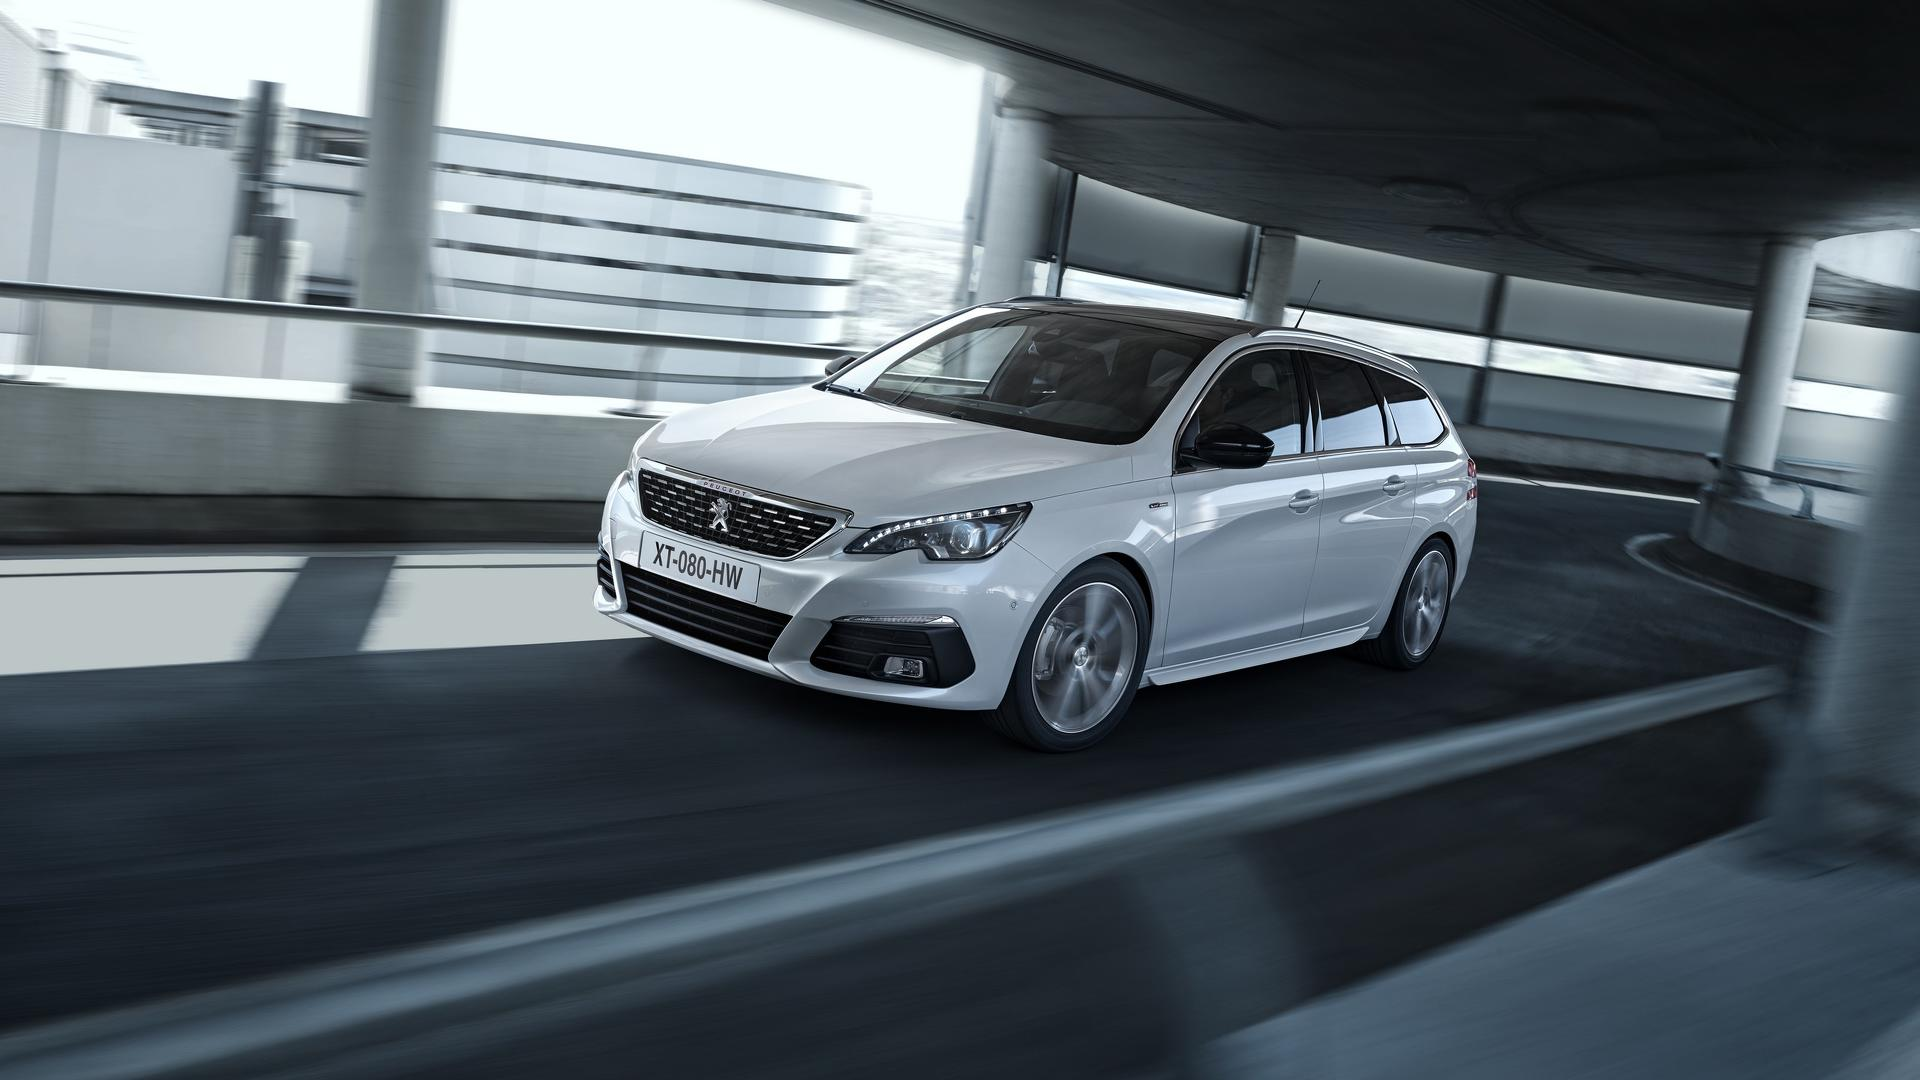 TEST: Peugeot 308 1.2 PureTech 130 EAT8